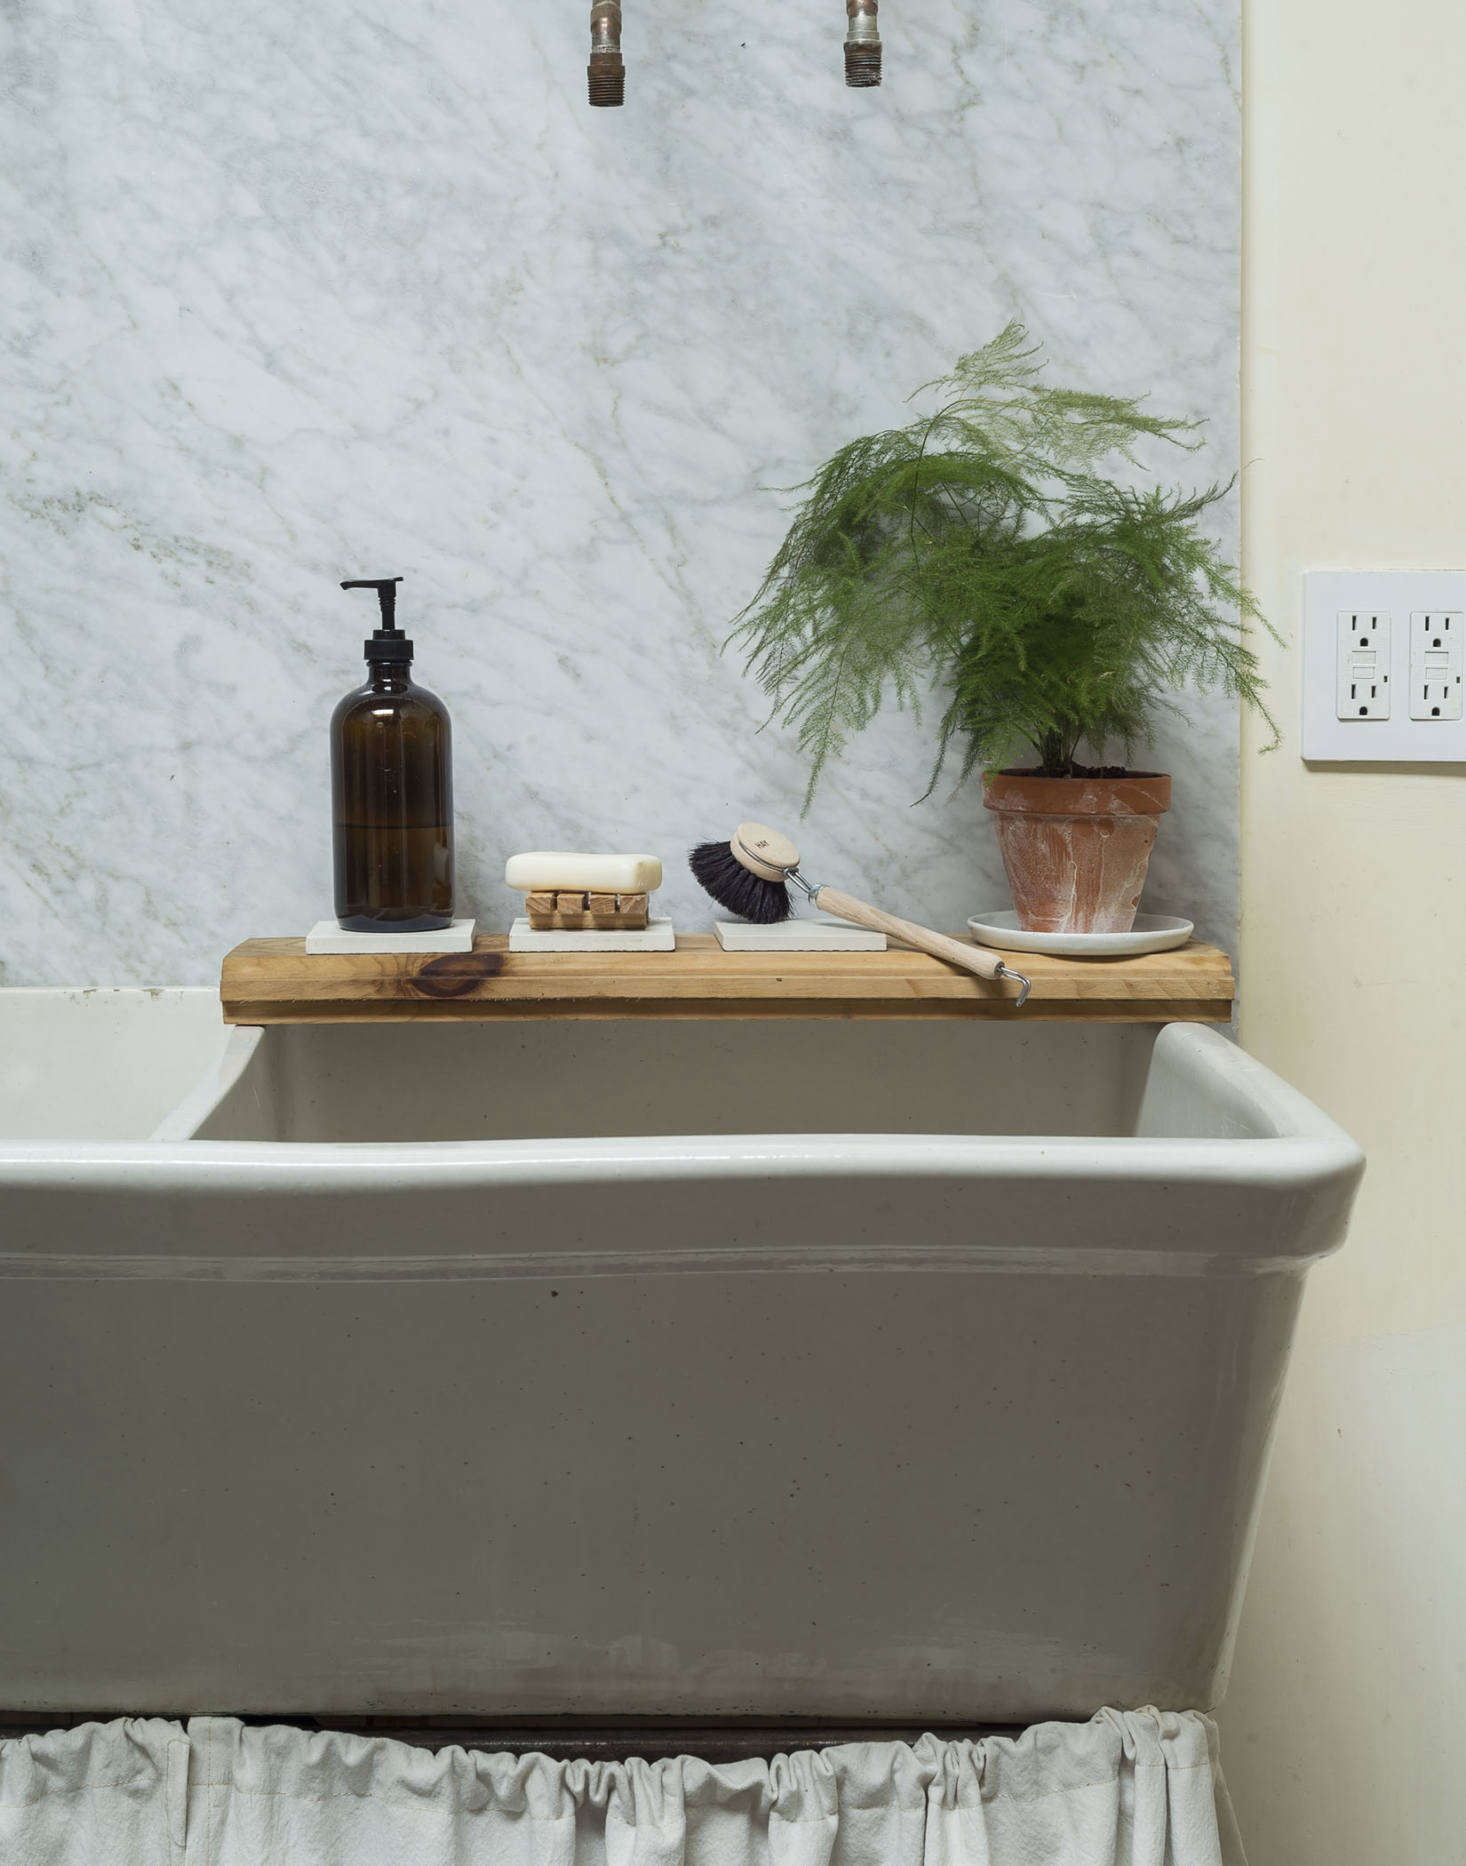 A leftover piece of pine flooring serves as a ledge for sink essentials.